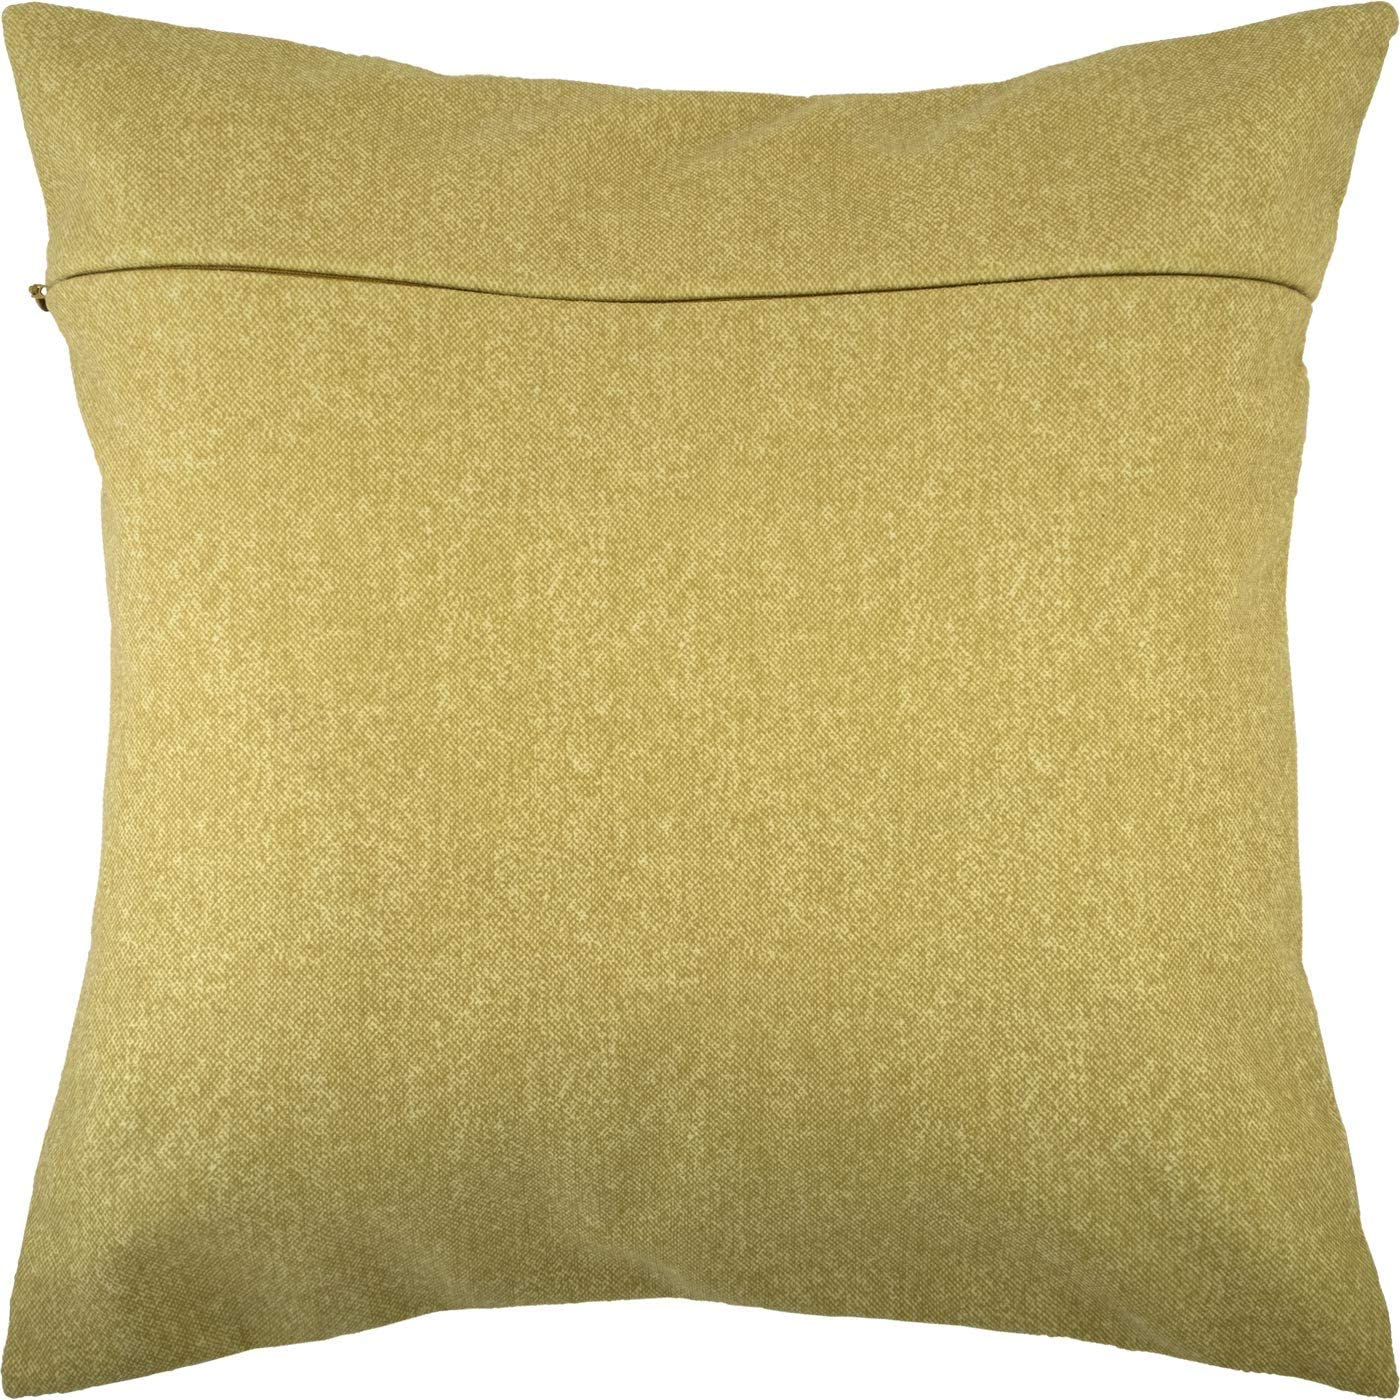 from Europe with Zipper Eggplant Velvet Backing 16 /× 16 inches for Throw Pillow Kits